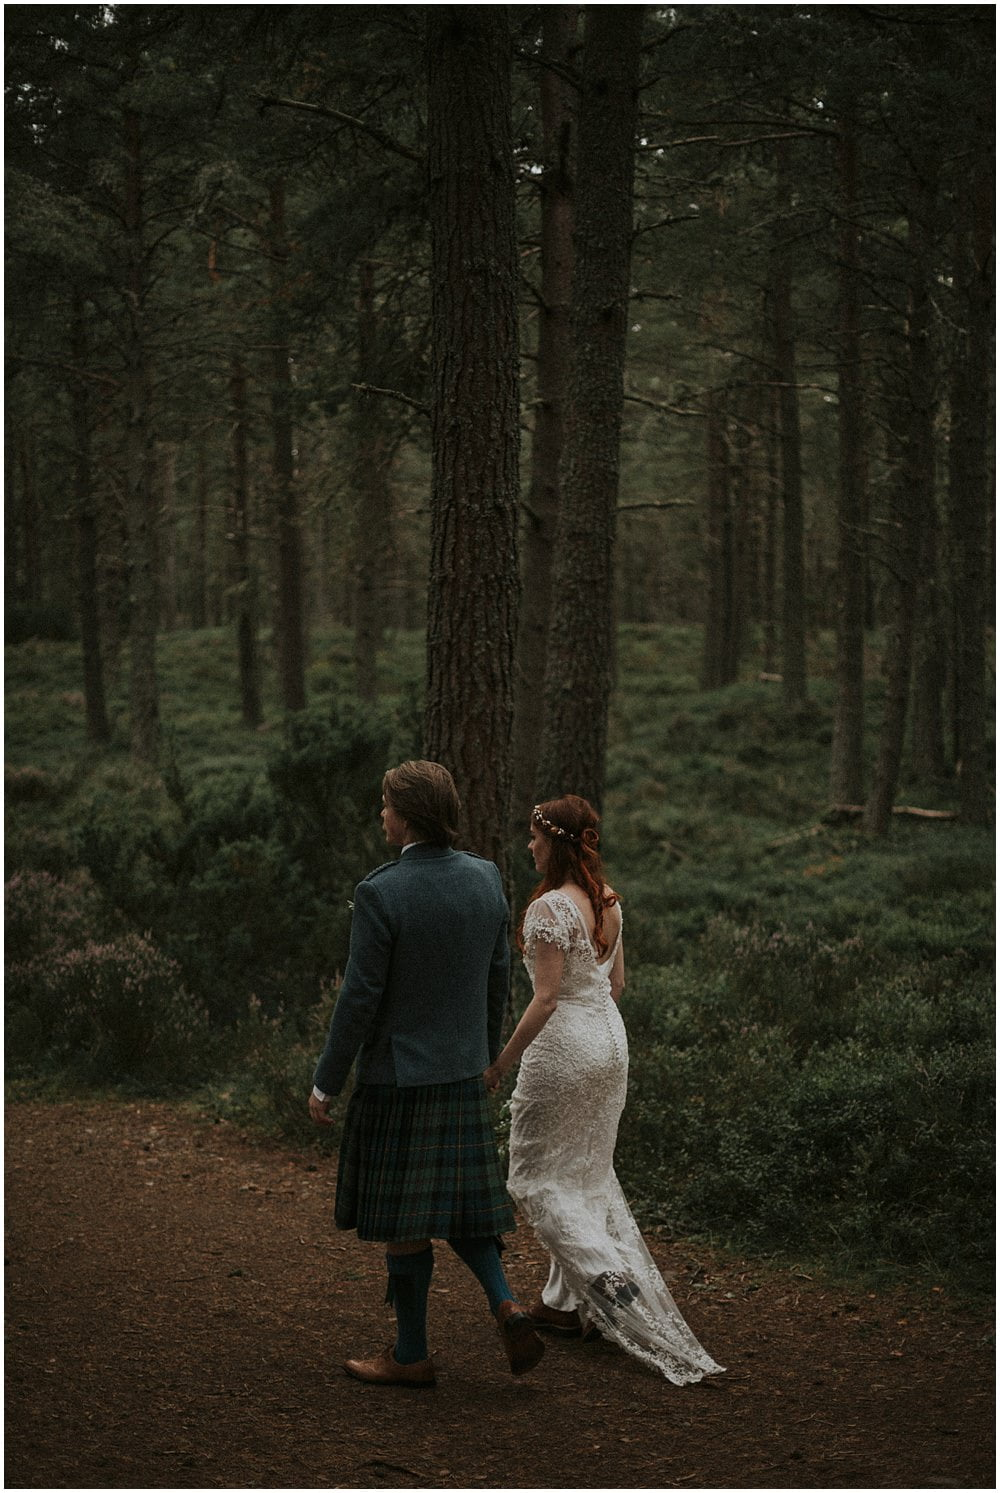 Loch Garten Scotland Forest Elopement, by Bernadeta Kupiec, Cairngorms National Park Elopement, Micro Wedding Scotland, Intimate wedding Scotland